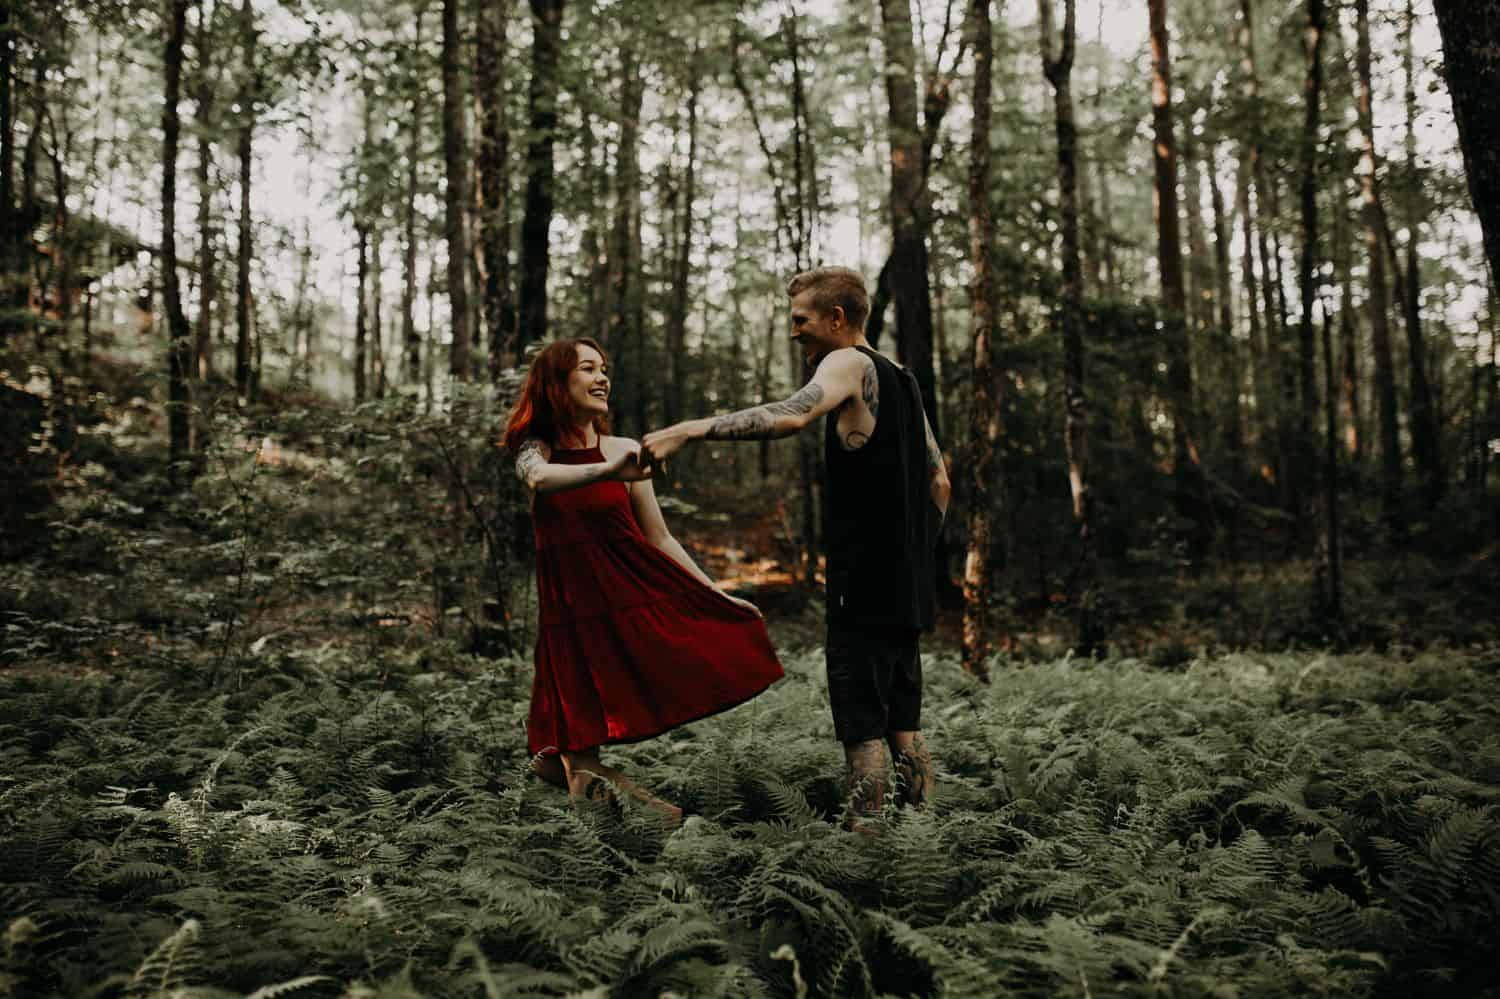 This Is the Boudoir Photography Shy Couples Need To See: Tattooed Couple Dances In the Ferns